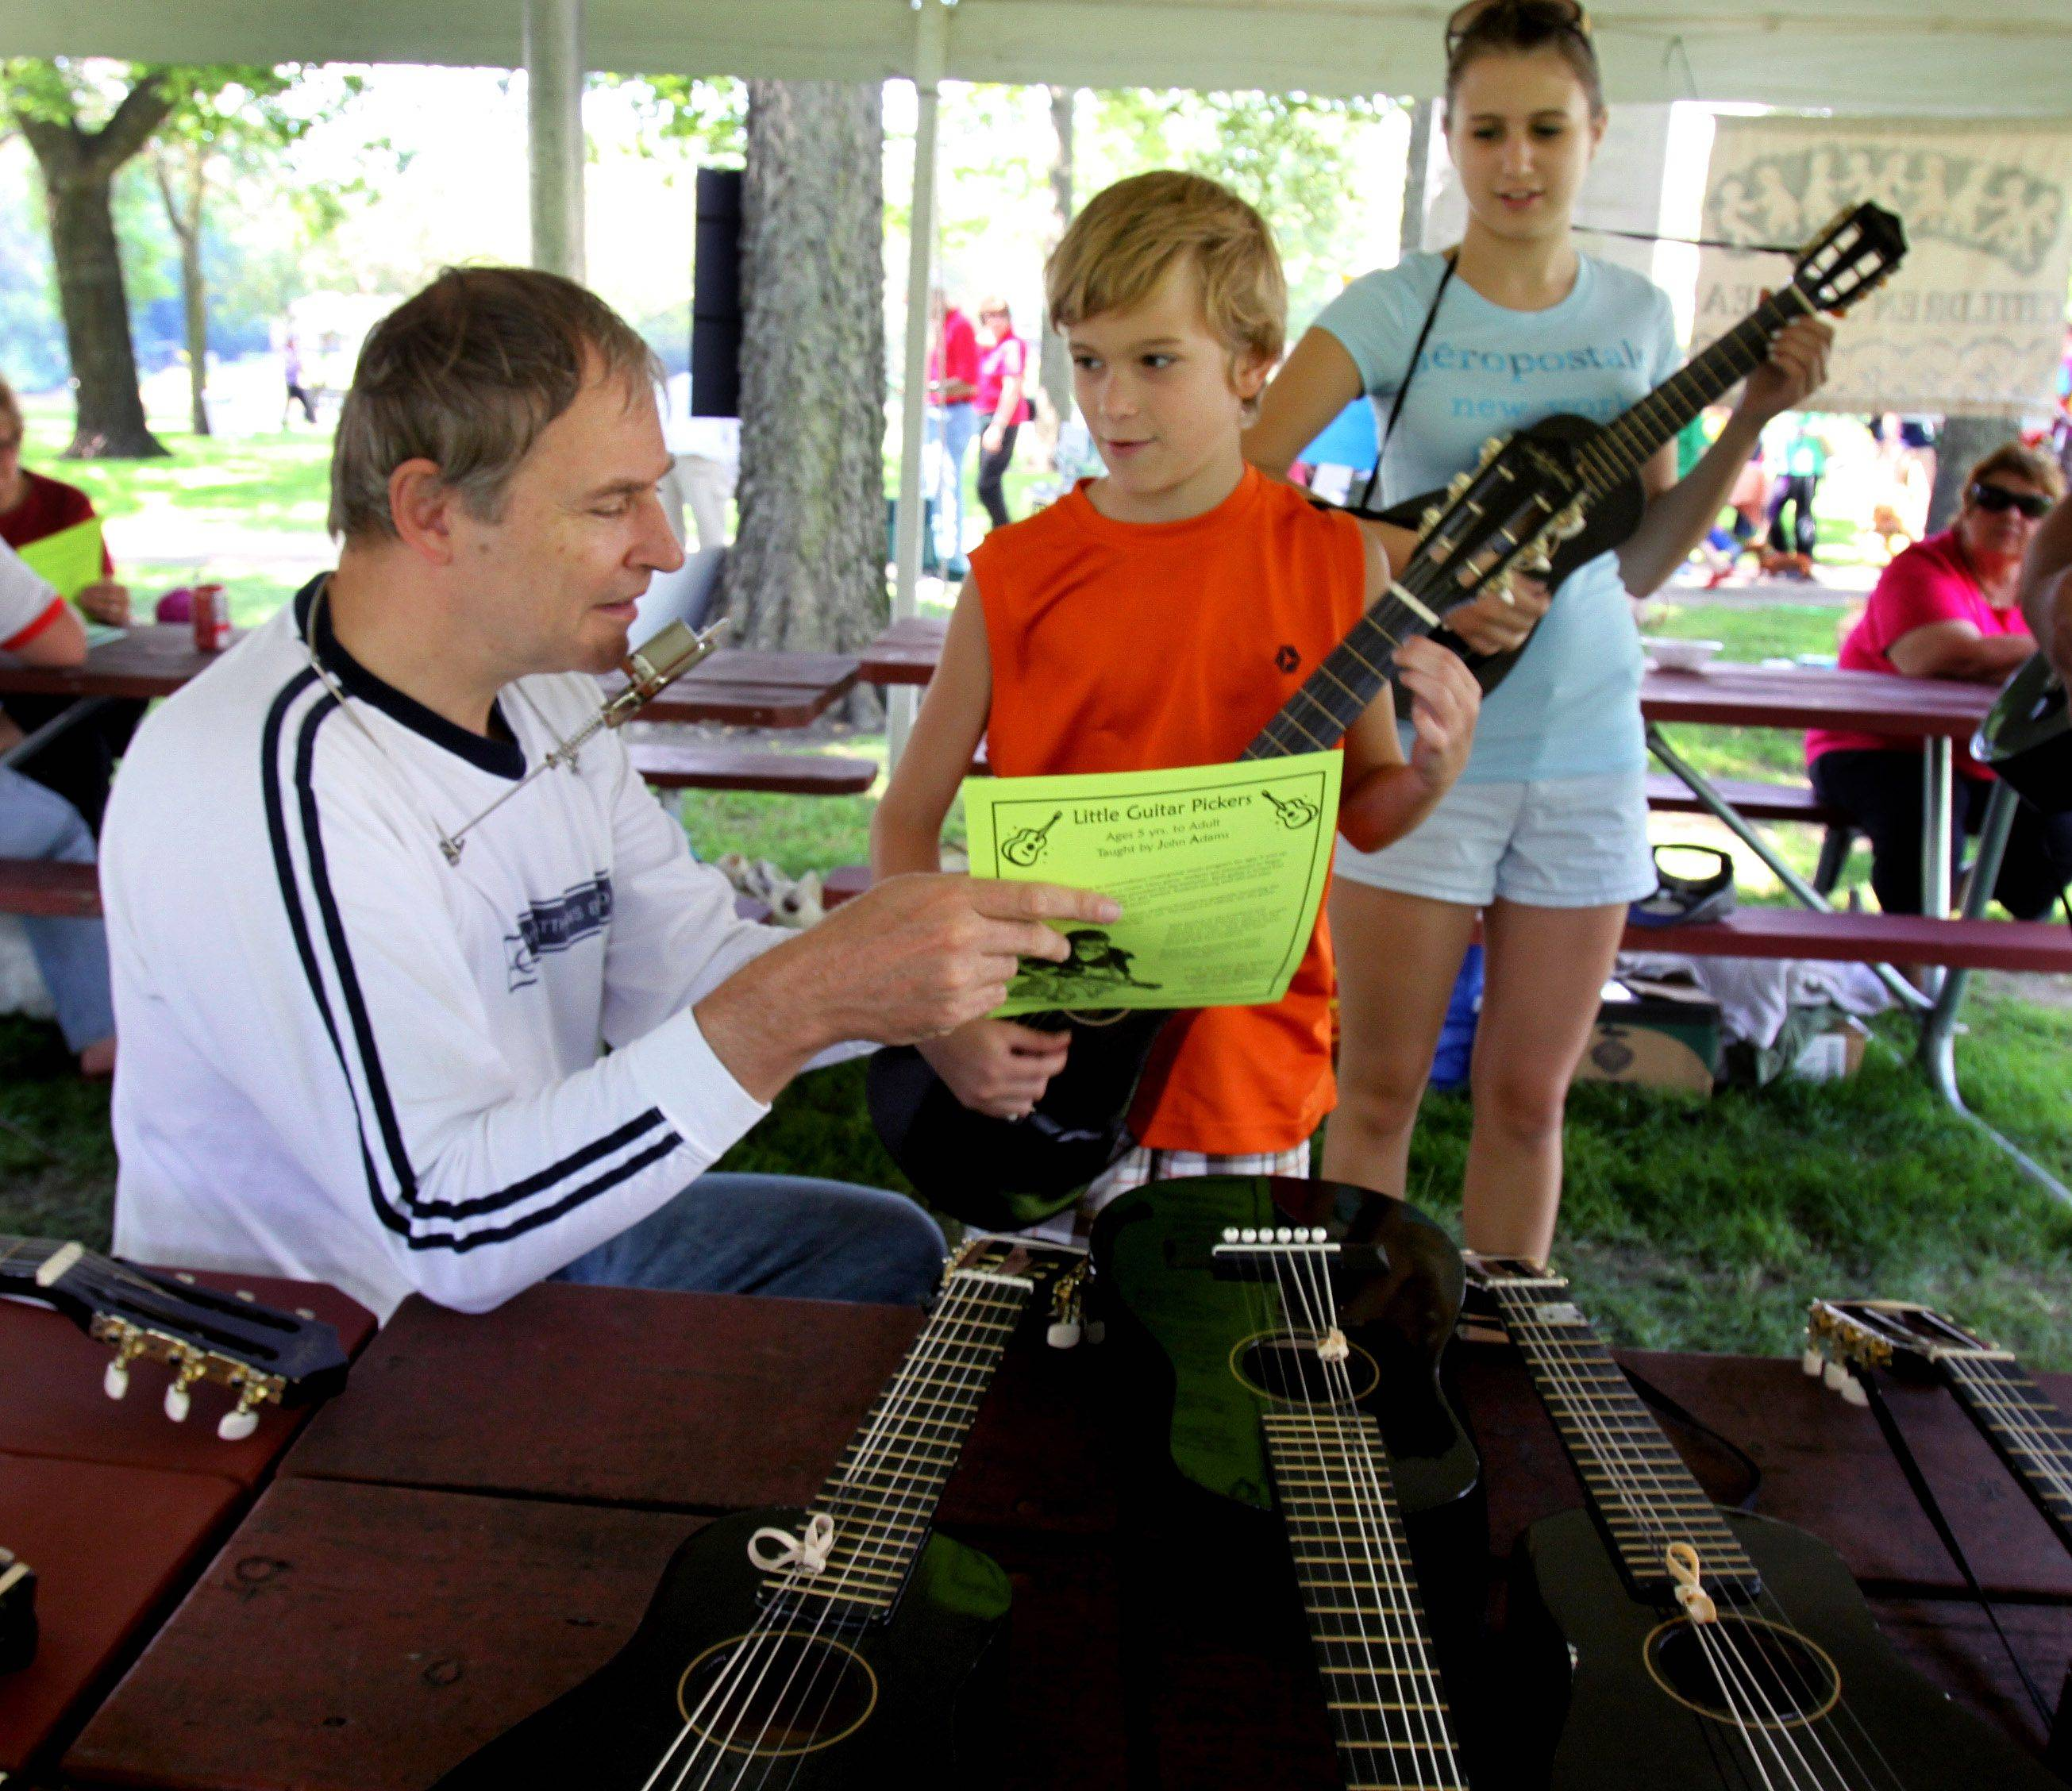 John Adams, left, from the Little Guitar Pickers program, gives a lesson to Brandon Godfrey, 9, and his sister Ashley, 14 of Batavia at the 33rd annual Fox Valley Folk Music and Storytelling festival in Geneva.